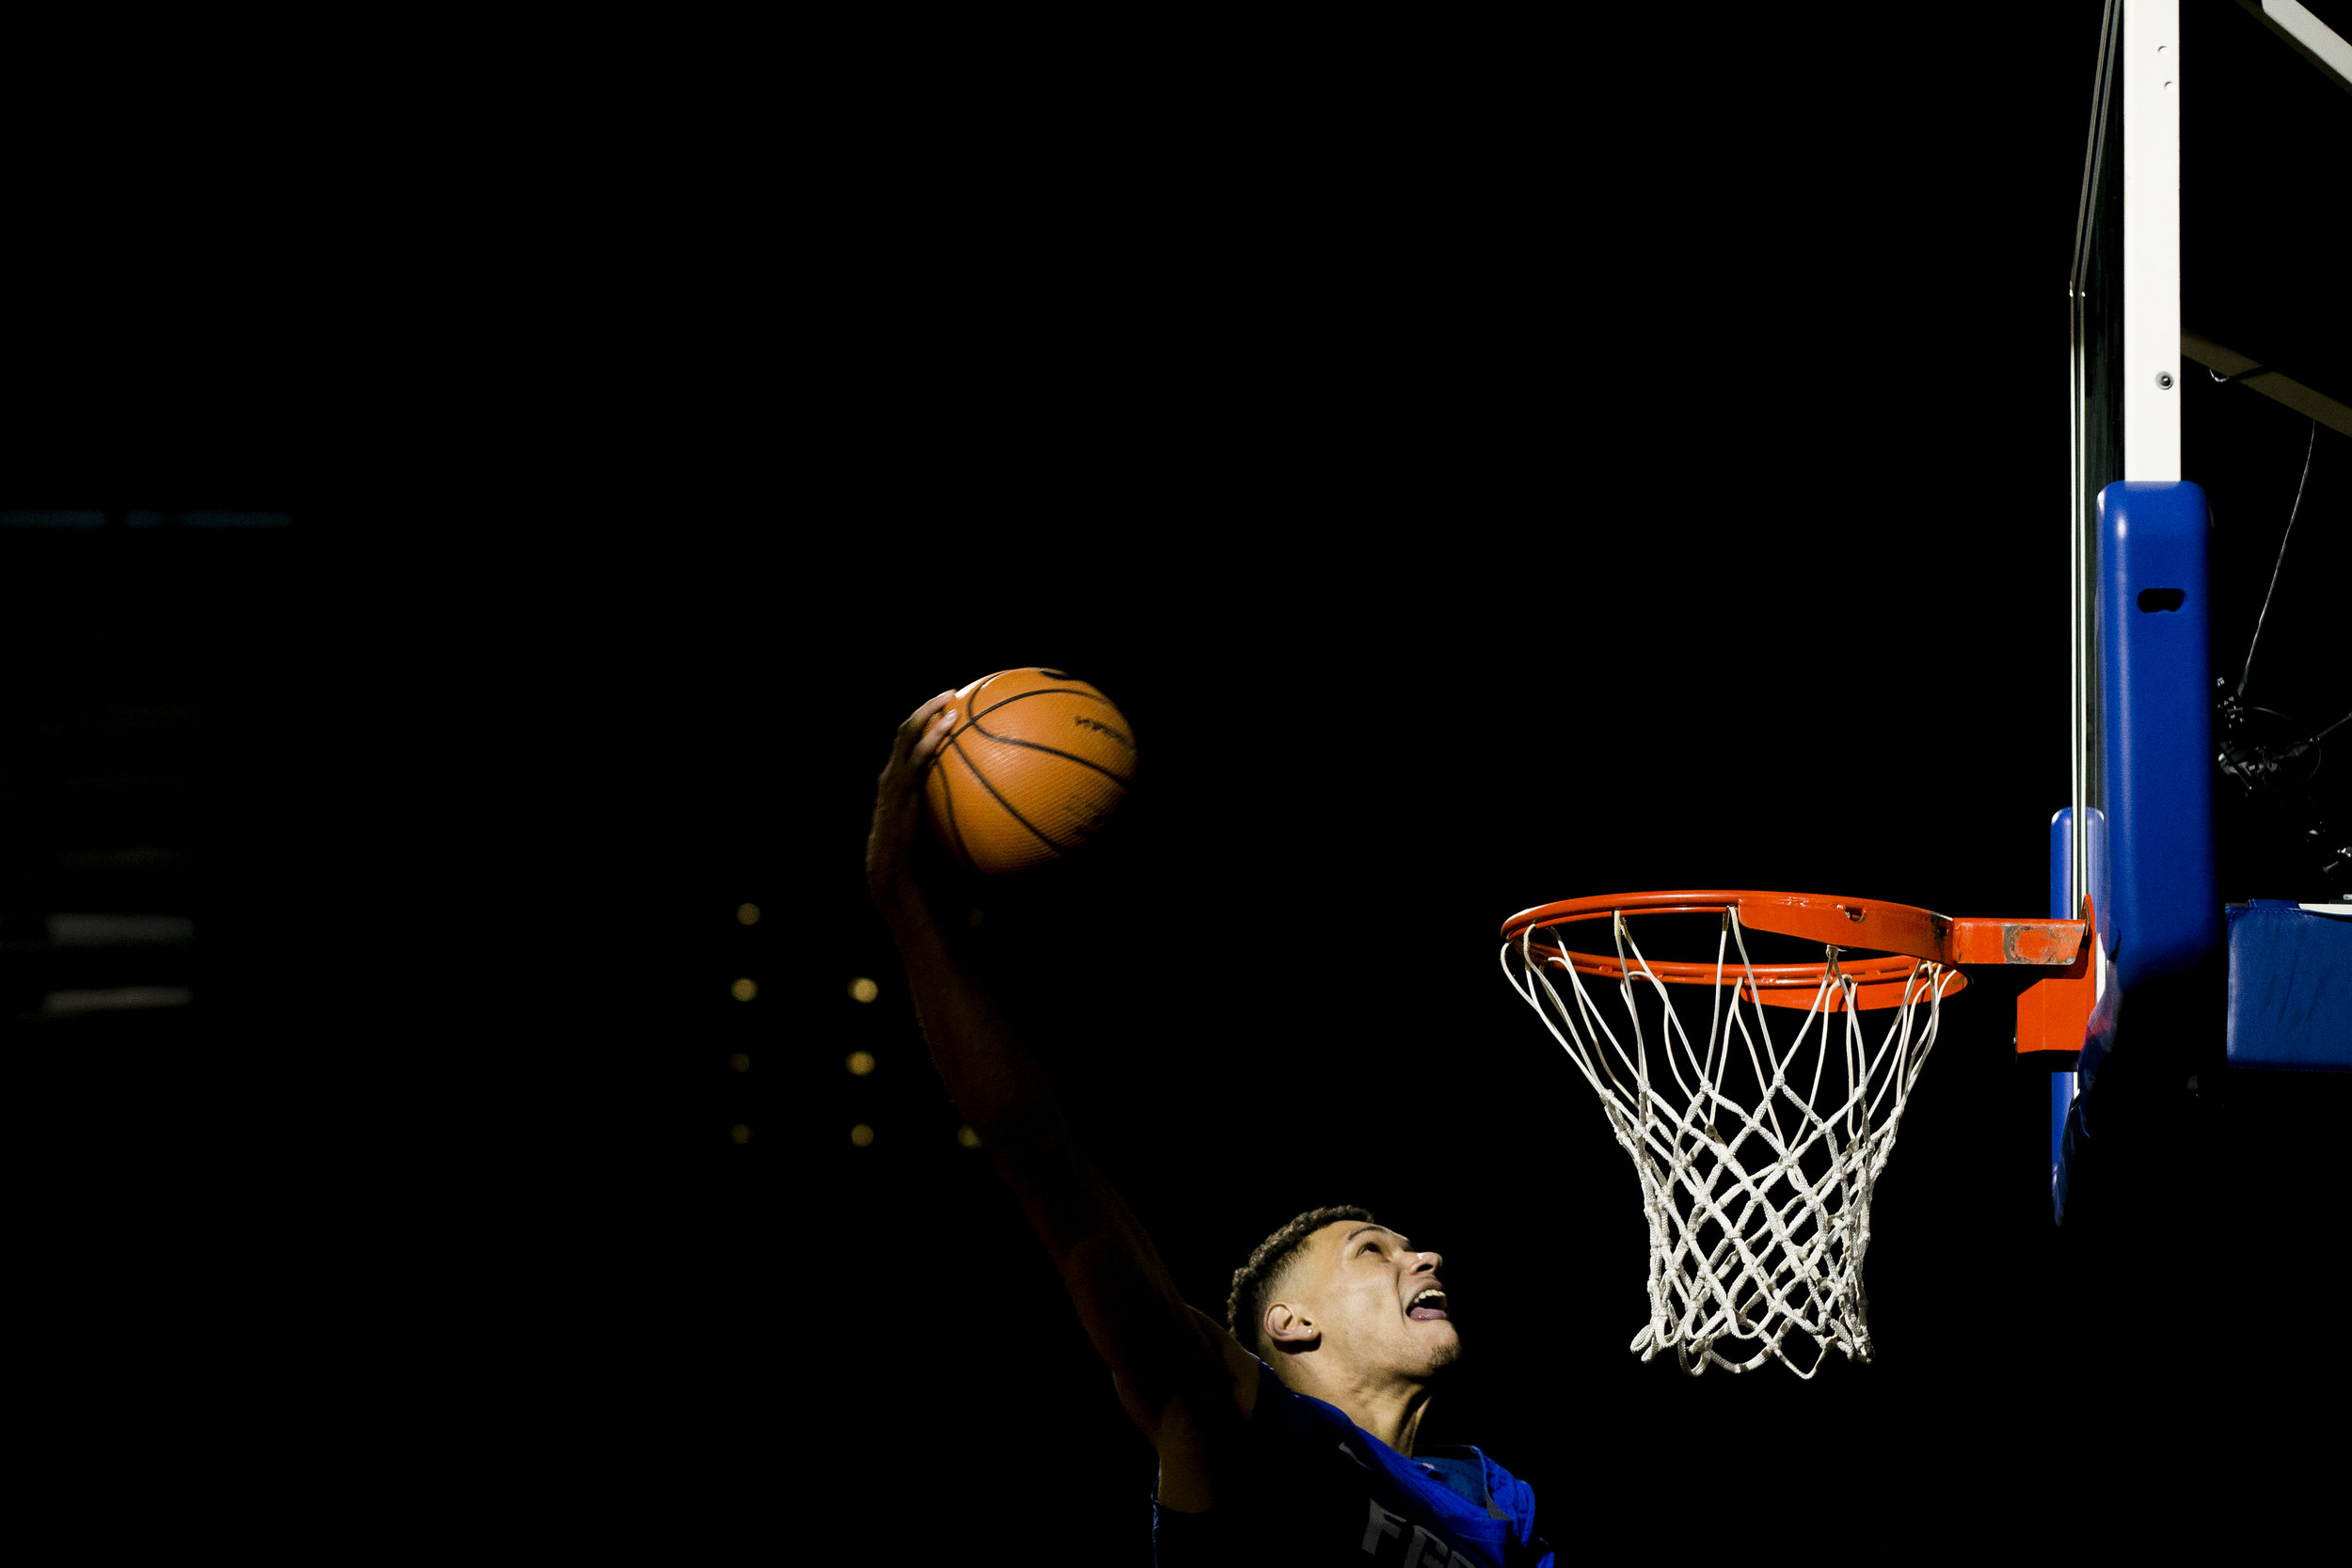 FGCU men's basketball forward Michael Gilmore slams one home in the dunk contest as the FGCU men's and women's basketball programs kicked off their 2017-18 campaigns with their annual pep rally, Dunk City After Dark, at Alico Arena Thursday, October 26, 2017 in Fort Myers.